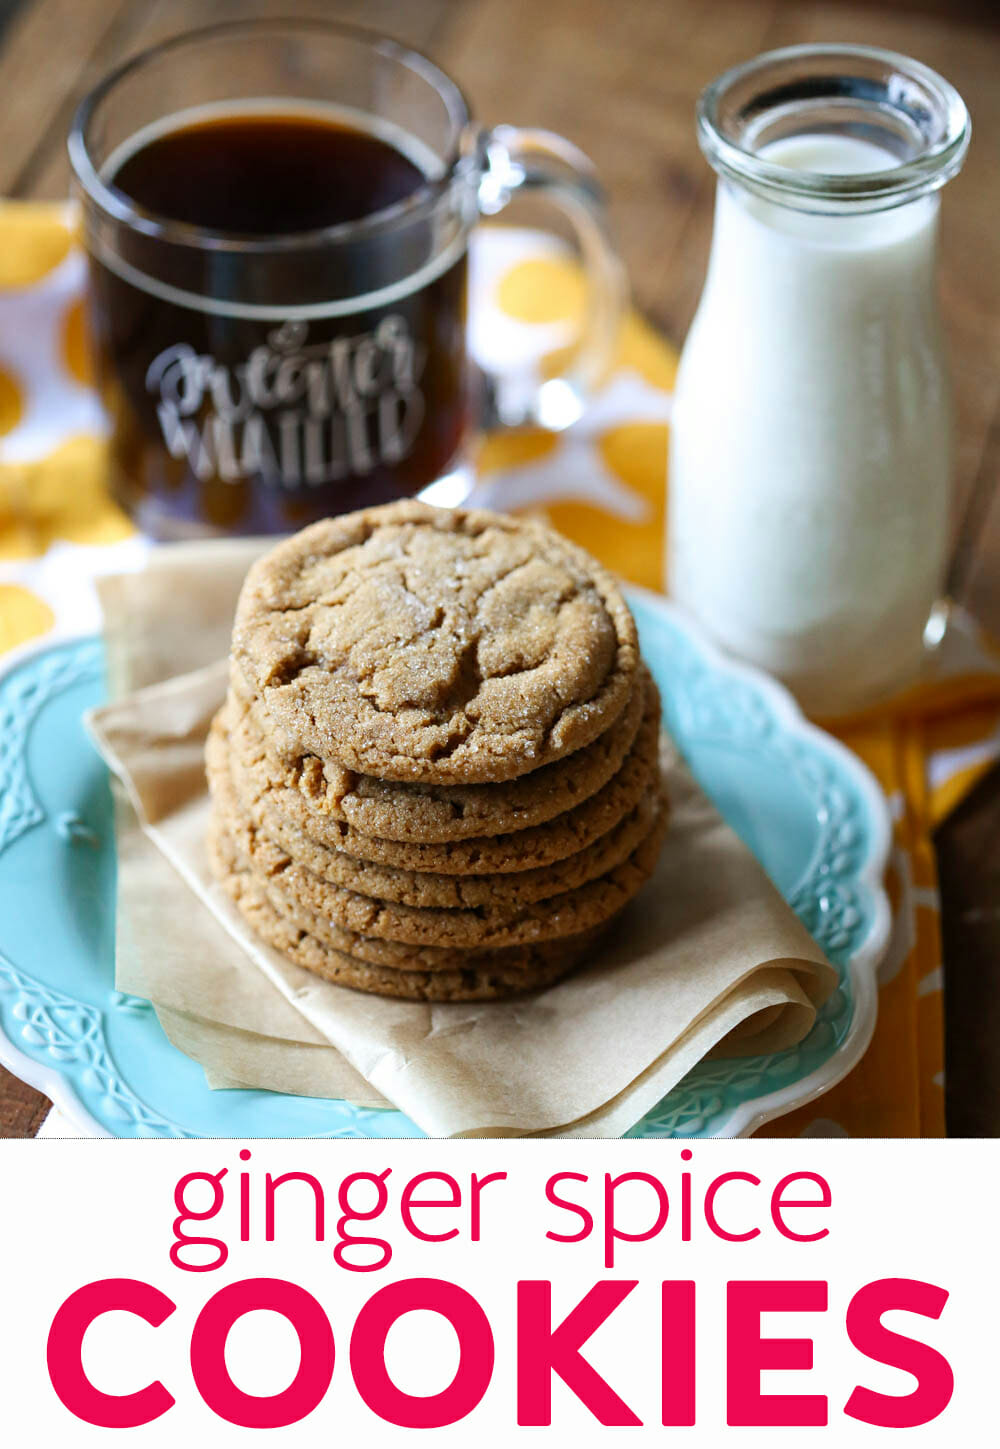 Flashback Friday: Ginger Spice Cookies